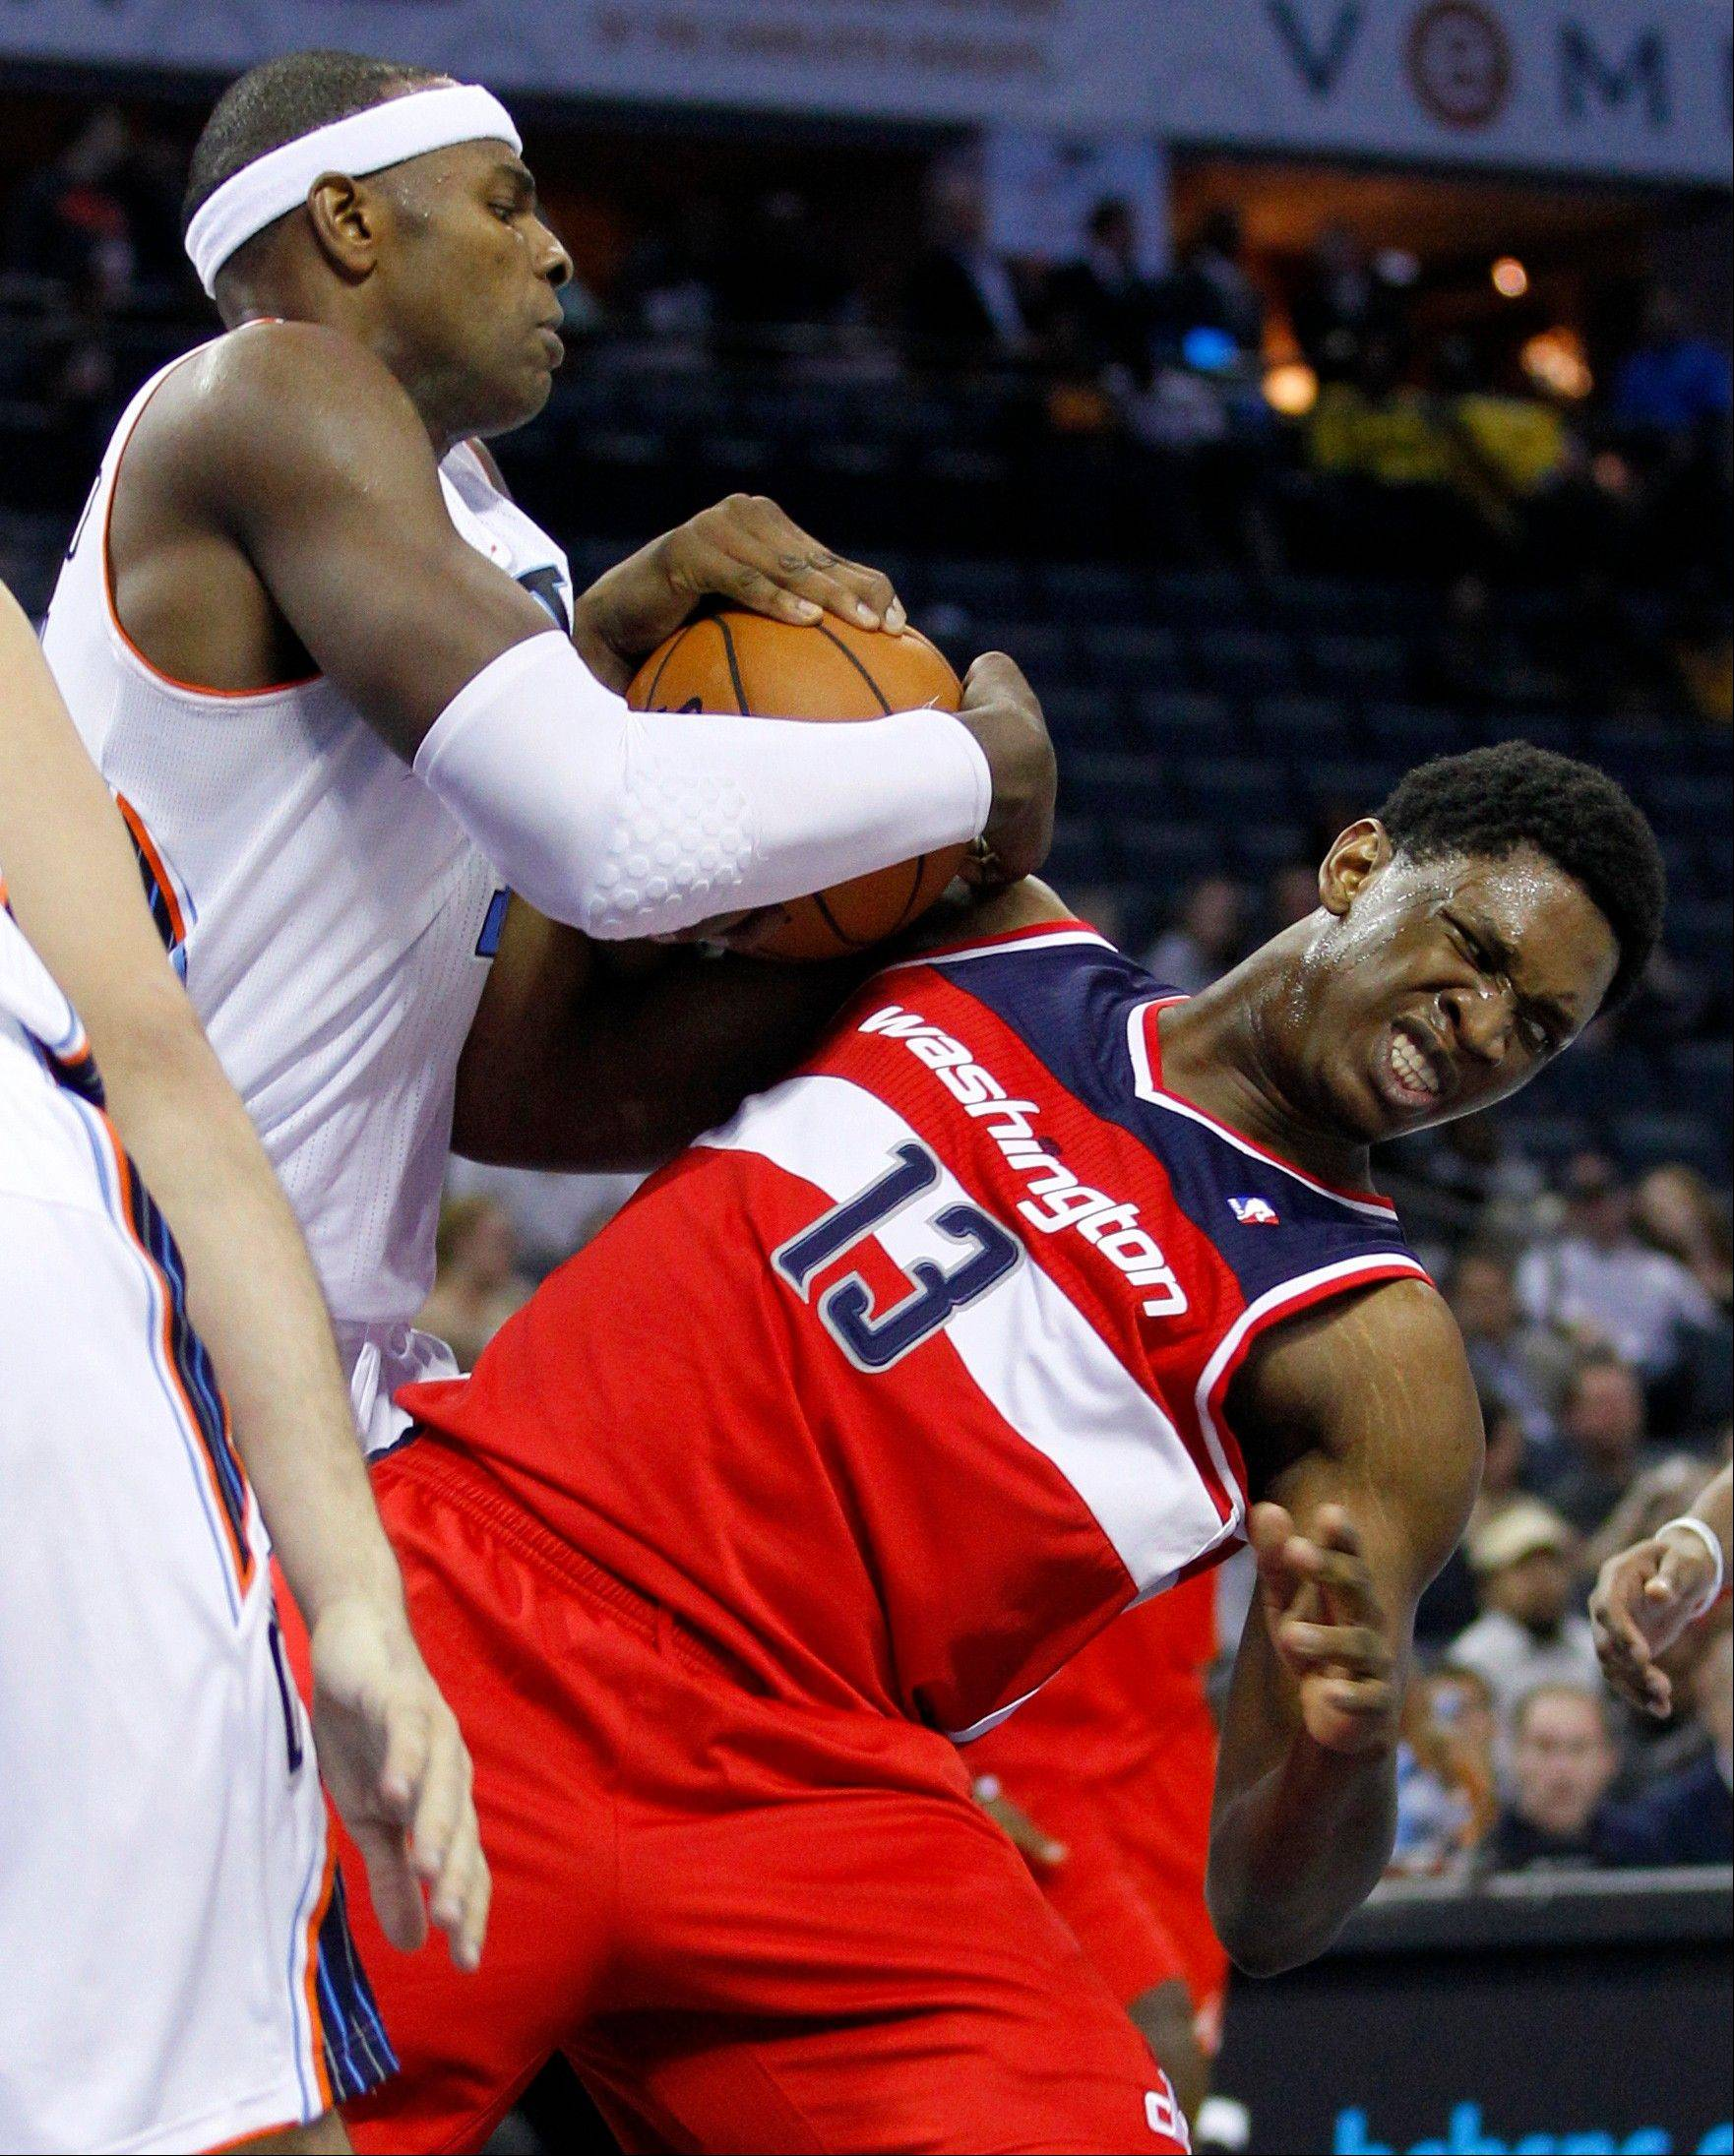 The Charlotte Bobcats' Brendan Haywood, left, wrestles the ball from the Washington Wizards' Kevin Seraphin, right, Tuesday during the second half in Charlotte, N.C. Charlotte won 92-76.